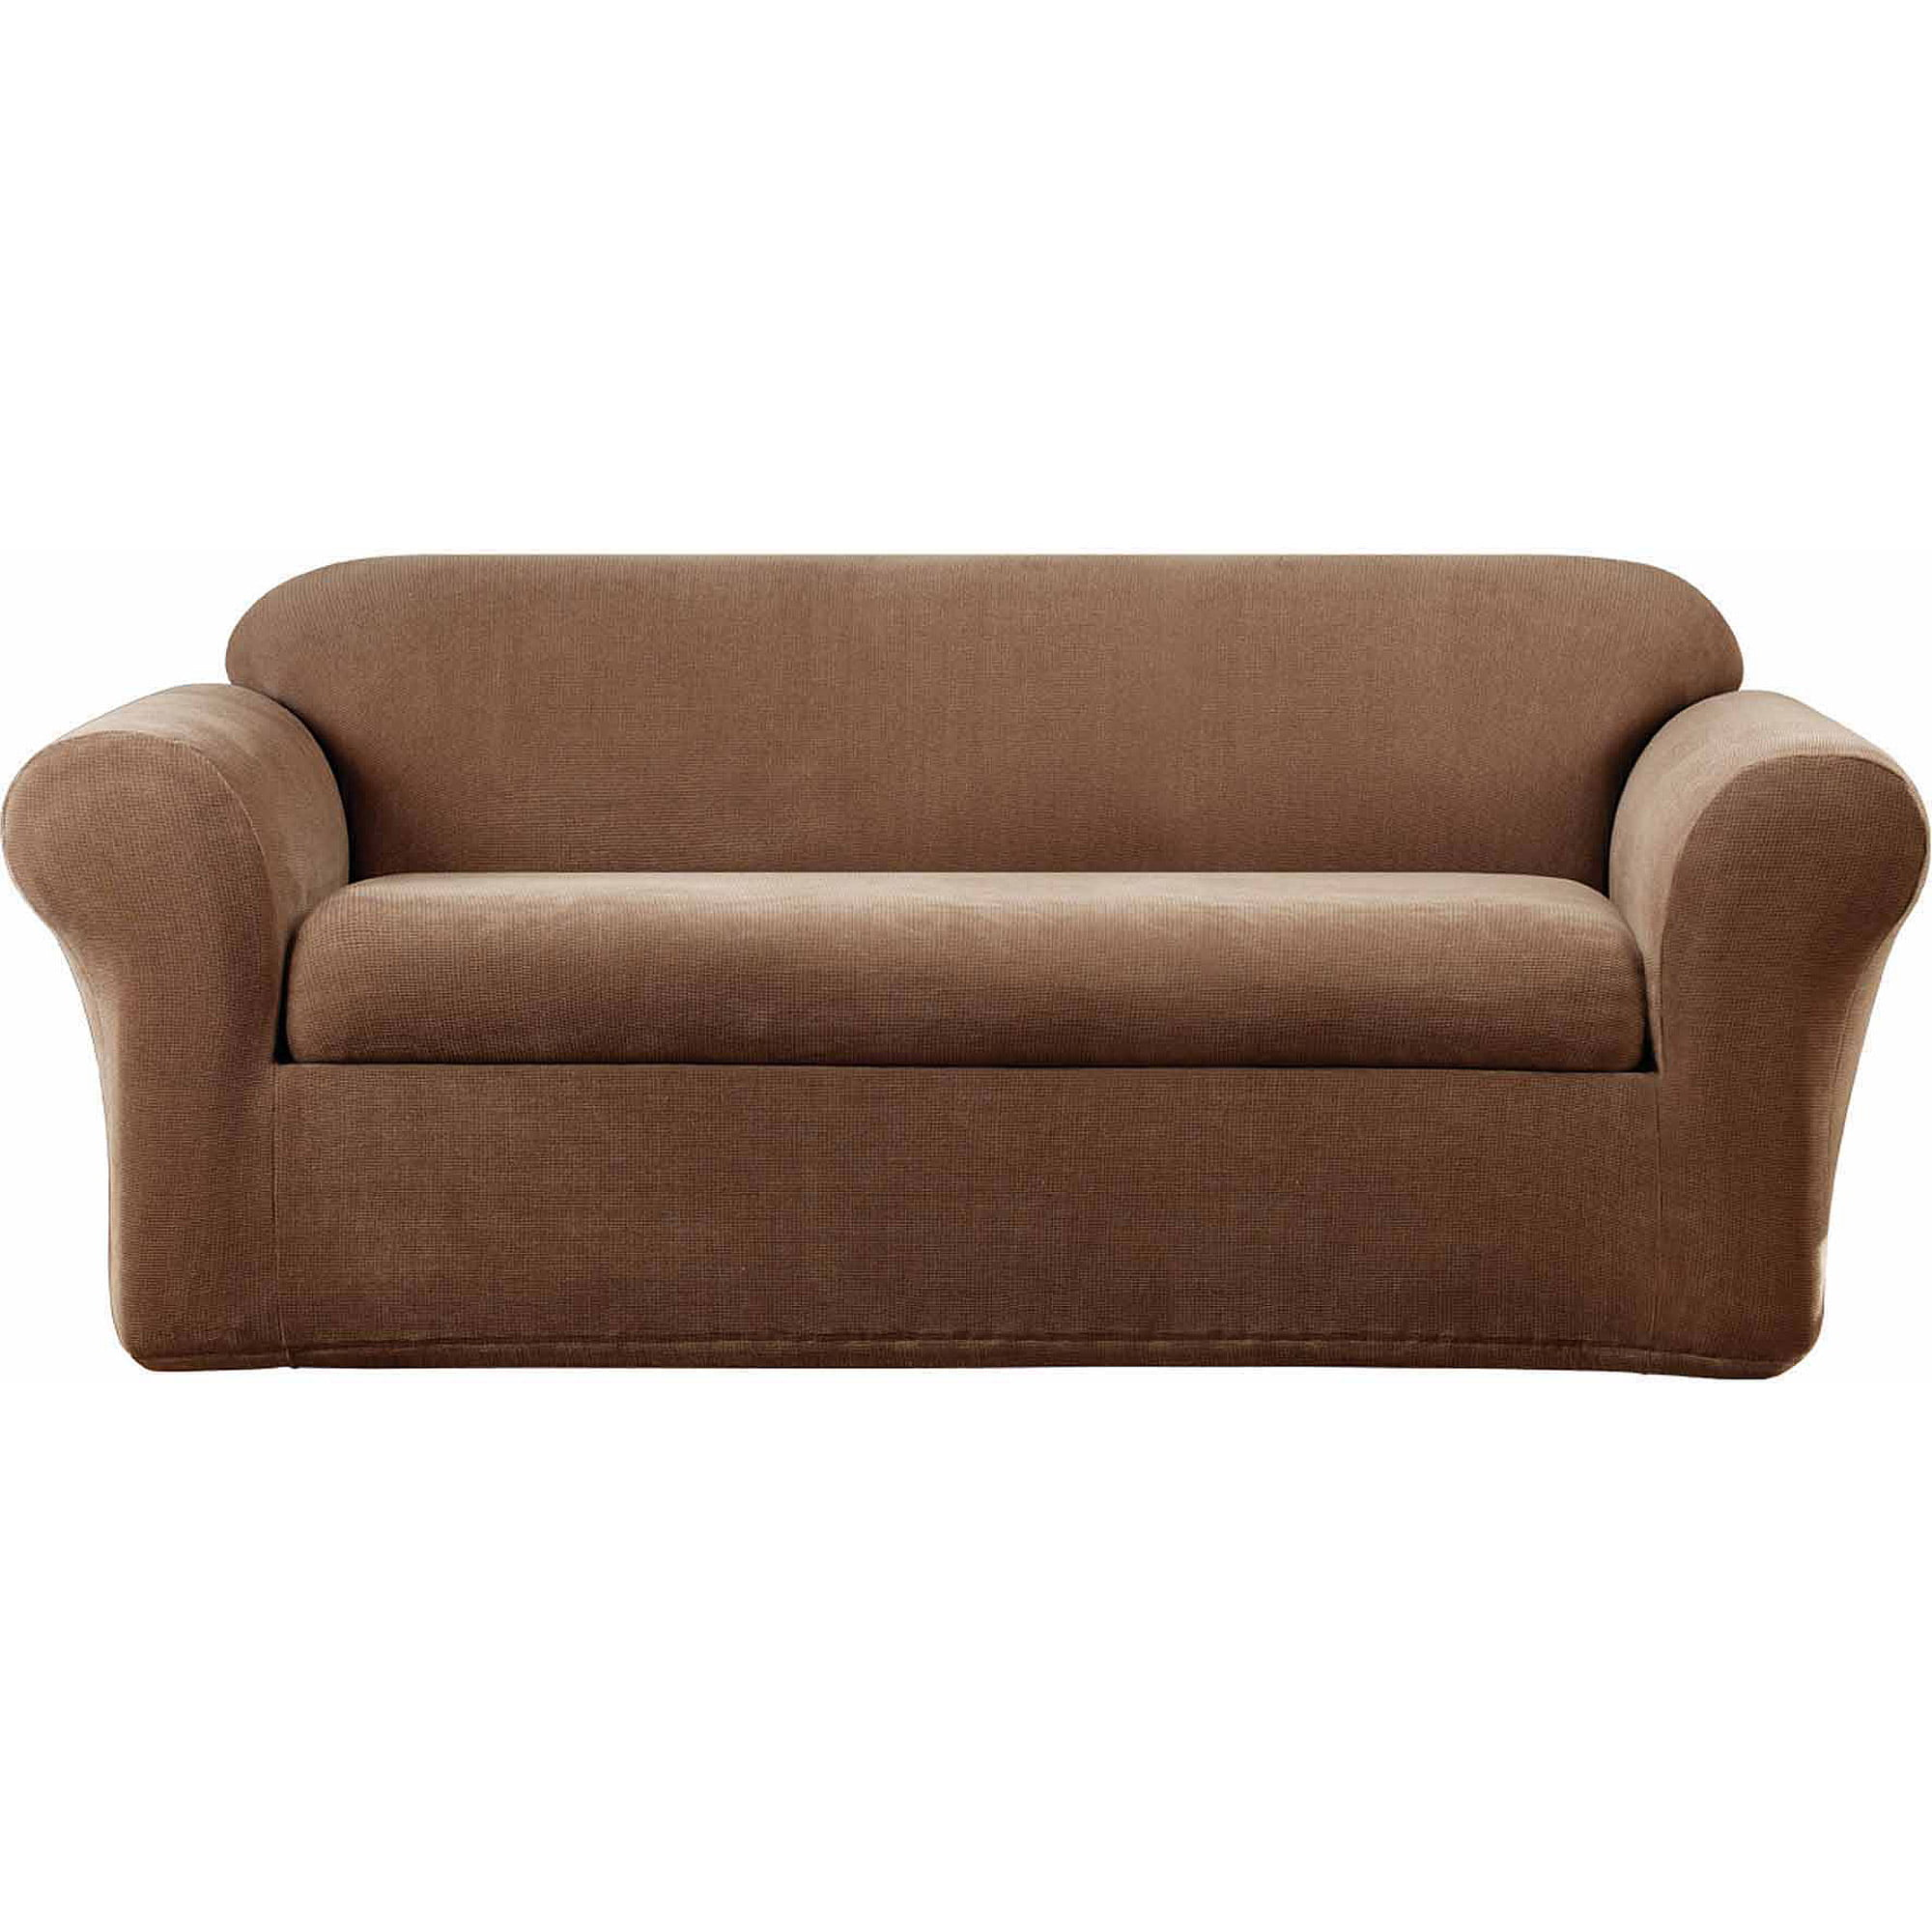 Sure Fit Stretch Metro Separate Seat Sofa Slipcover Walmart